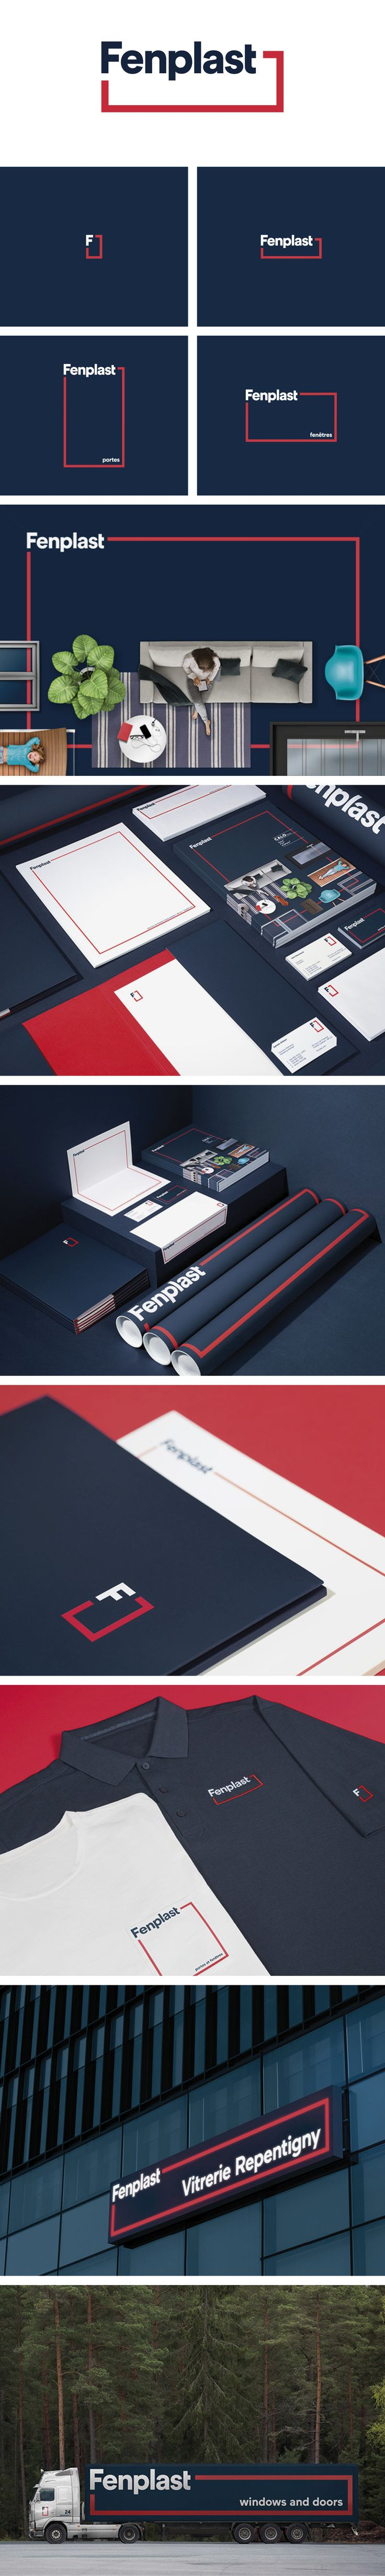 More corporate-designs are collected on: https://pinterest.com/rothenhaeusler/best-of-corporate-design/ · Agency: lg2 · Client: Fenplast · Source: http://lg2.com/fr/realisations/789/fenplast-identite-visuelle #branding #identity #corporatedesign